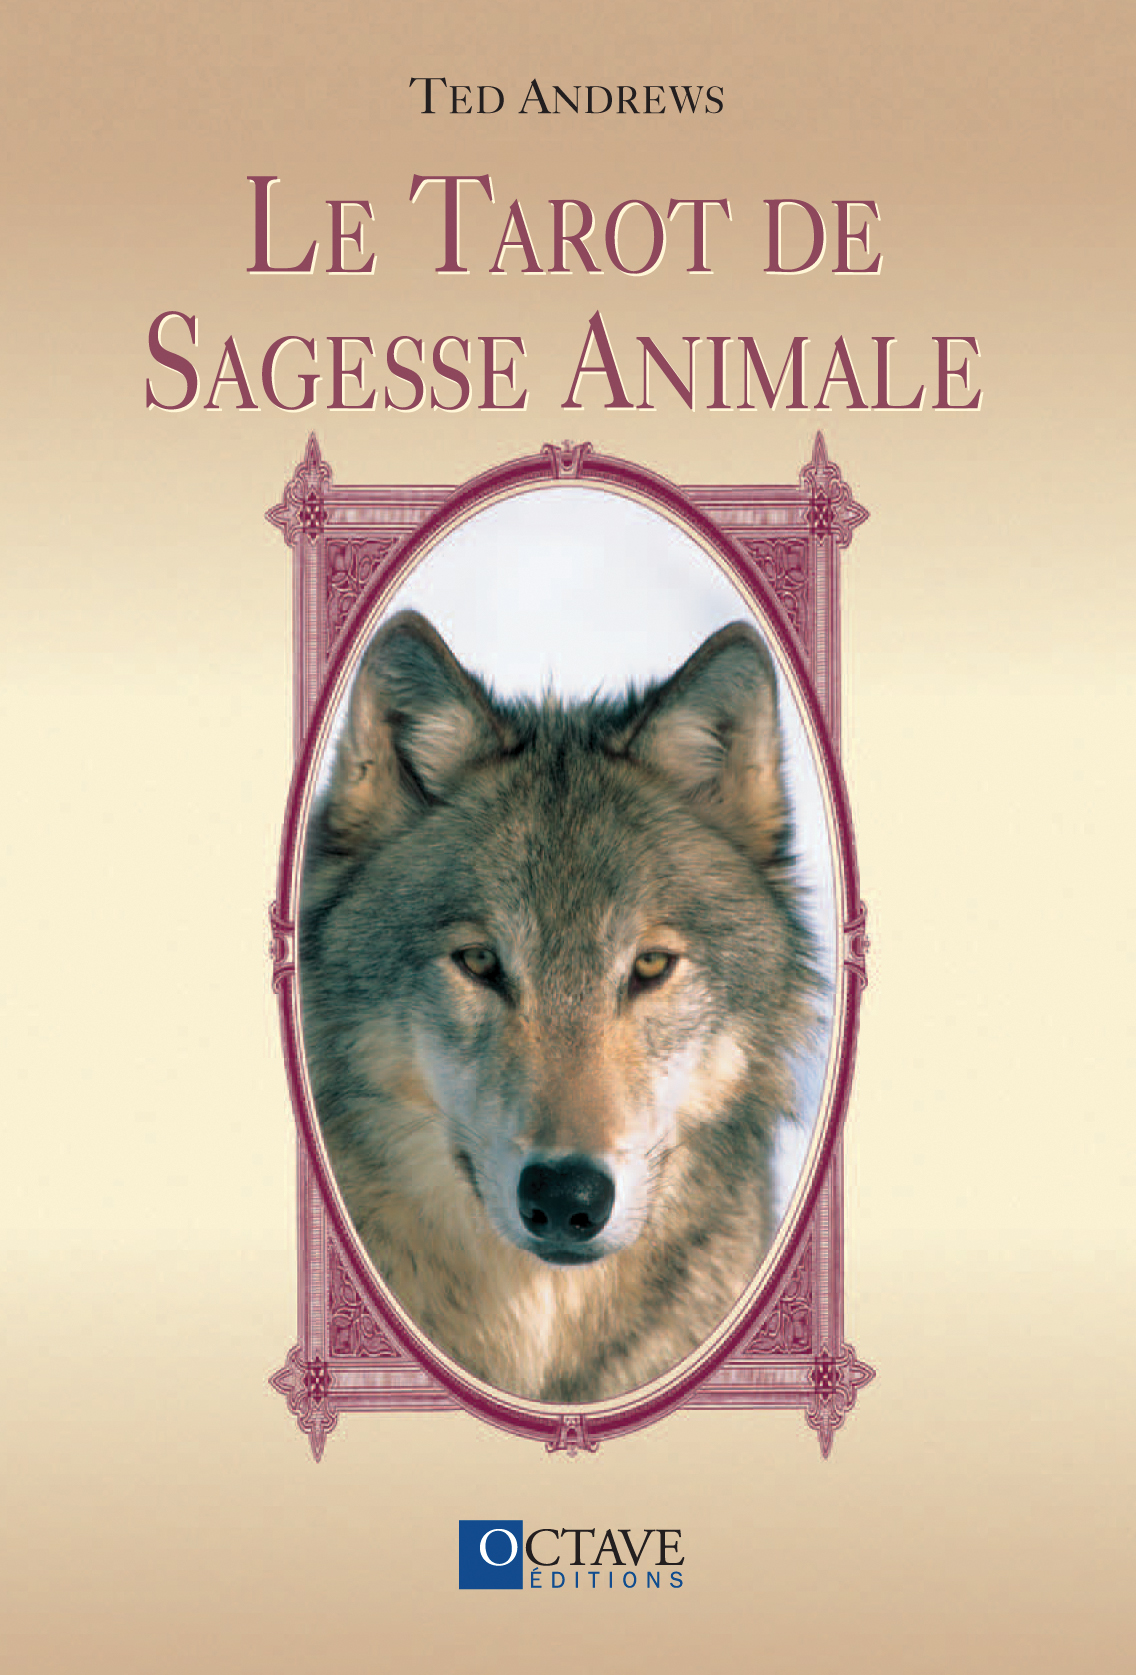 LE TAROT DE SAGESSE ANIMALE <i>Ted Andrews</i>